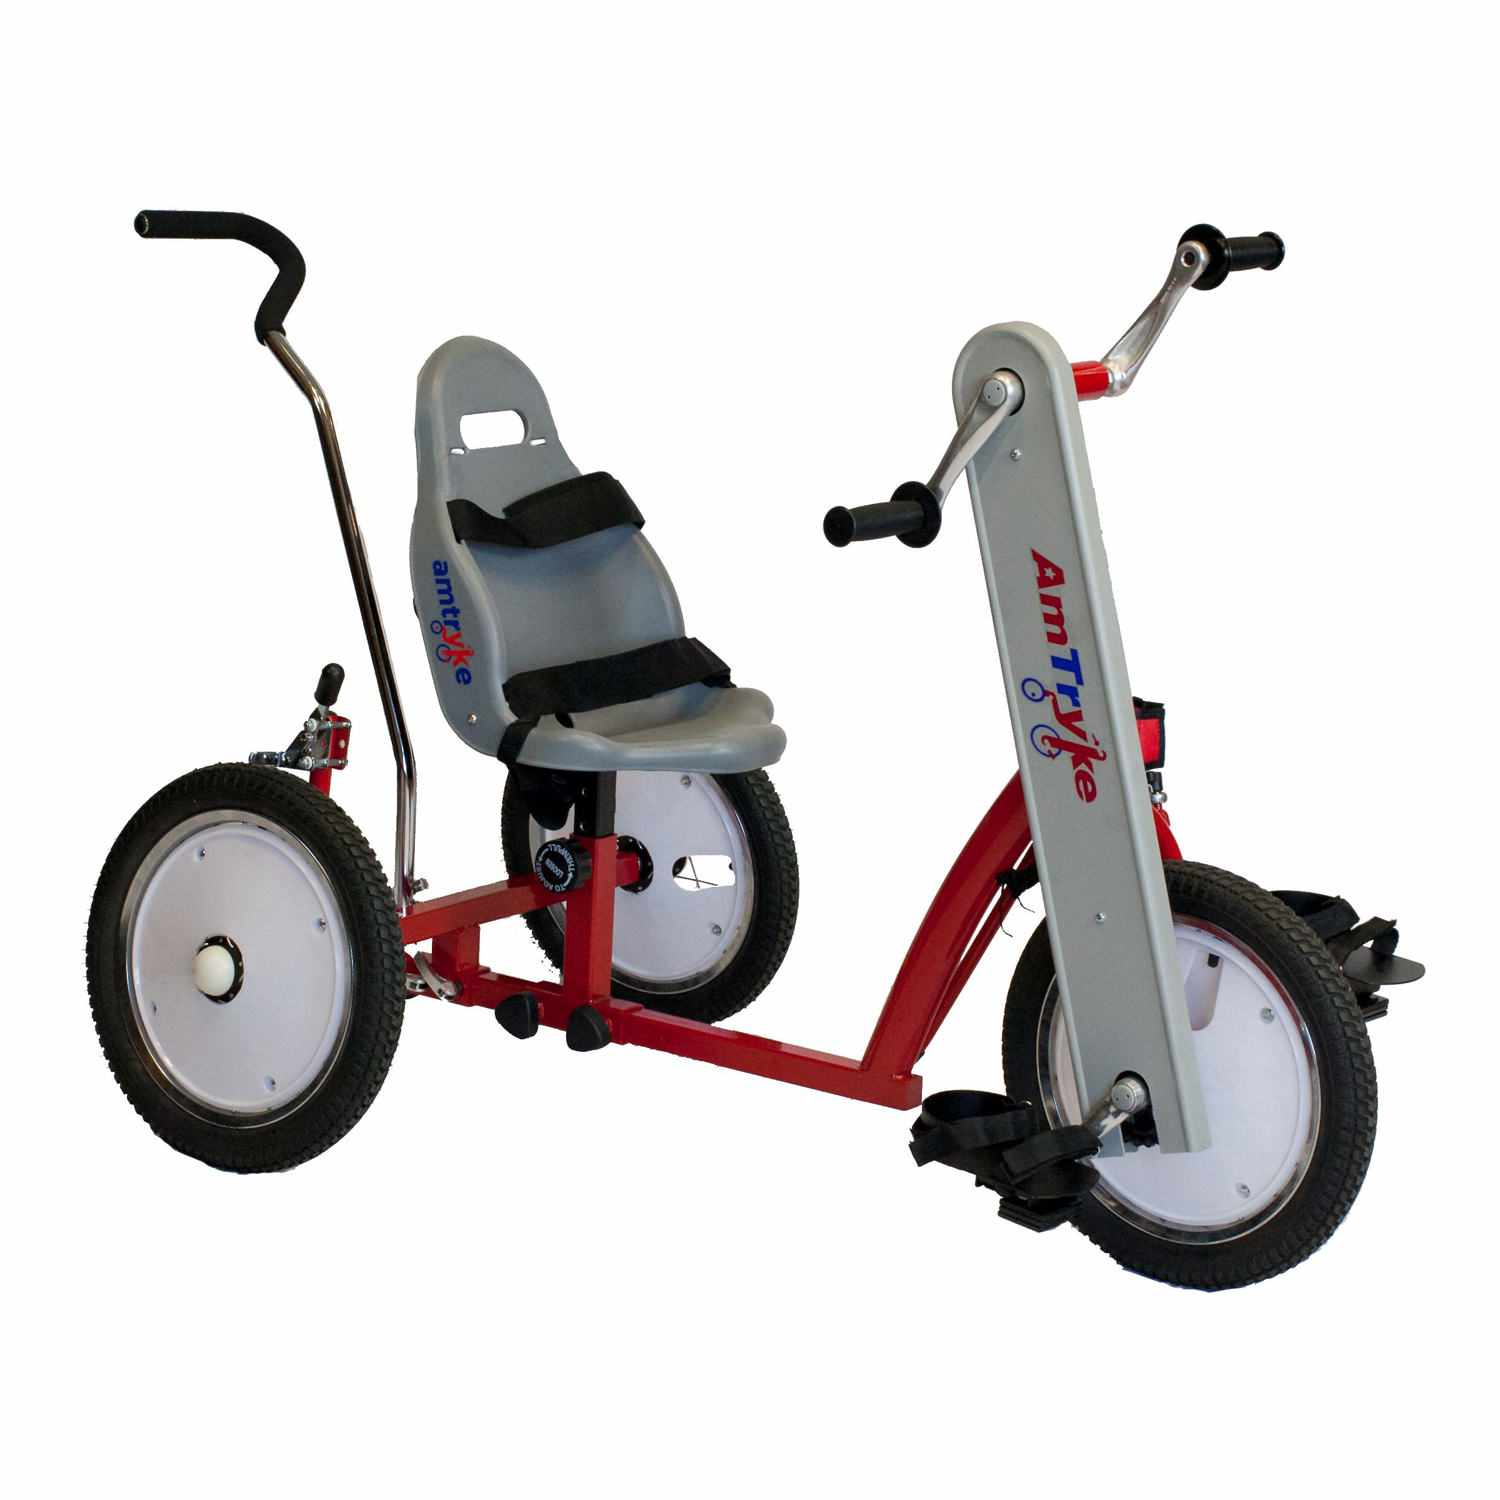 Amtryke AM-16 tricycle with bucket seat